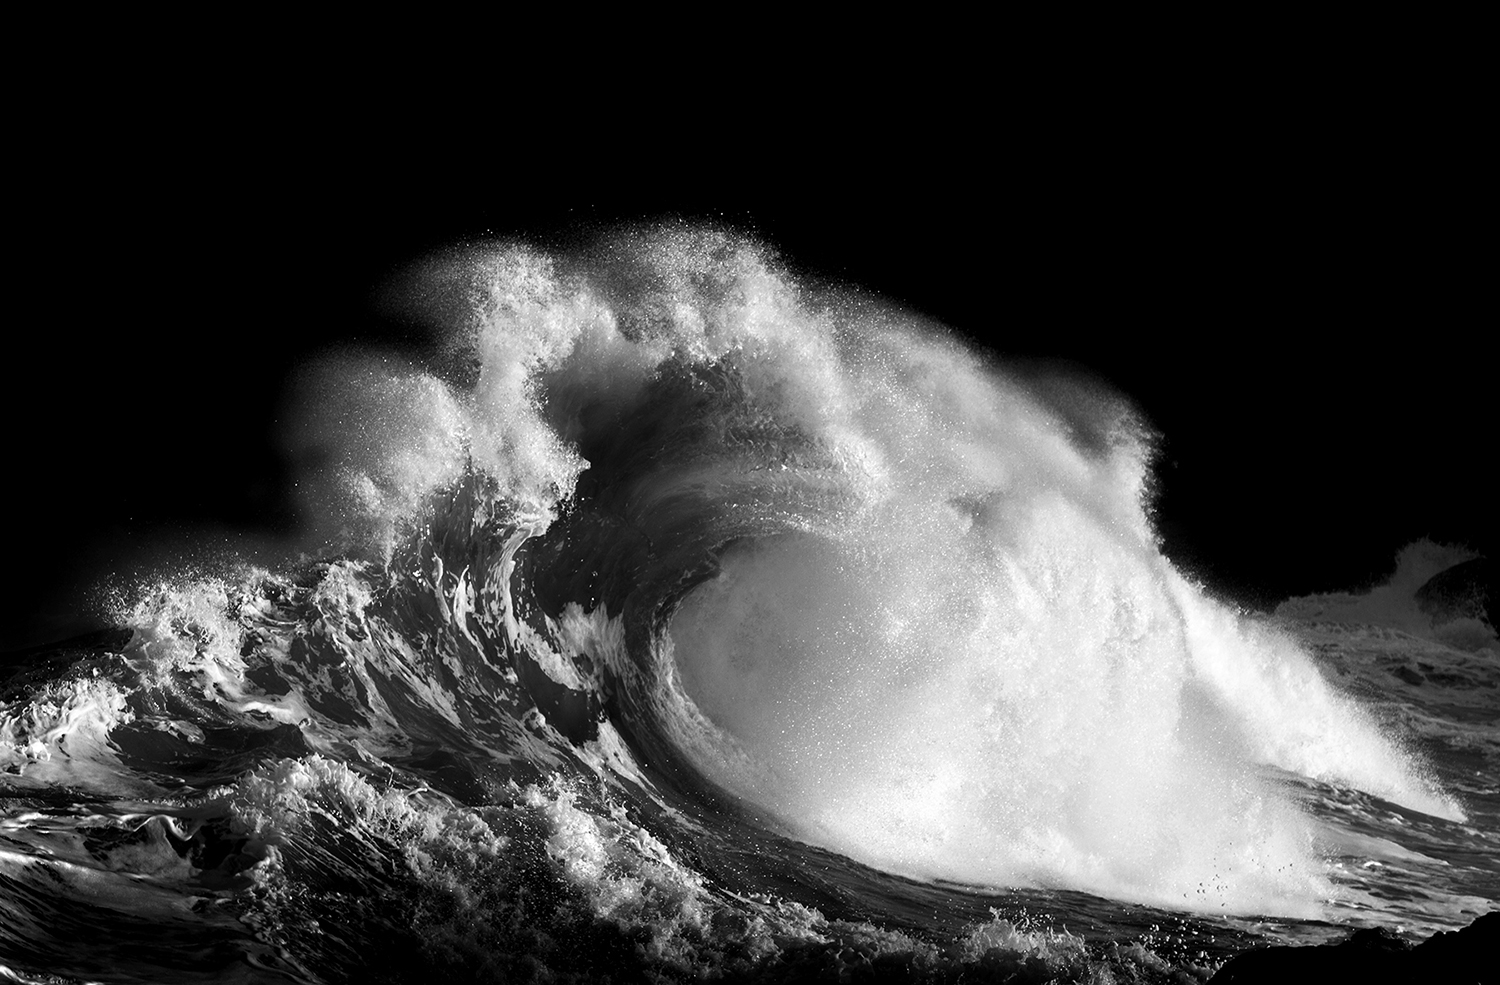 ocean wave, black and white, Lastlight - Ocean Calls For Help Fine Art Photography by Roberta Borges